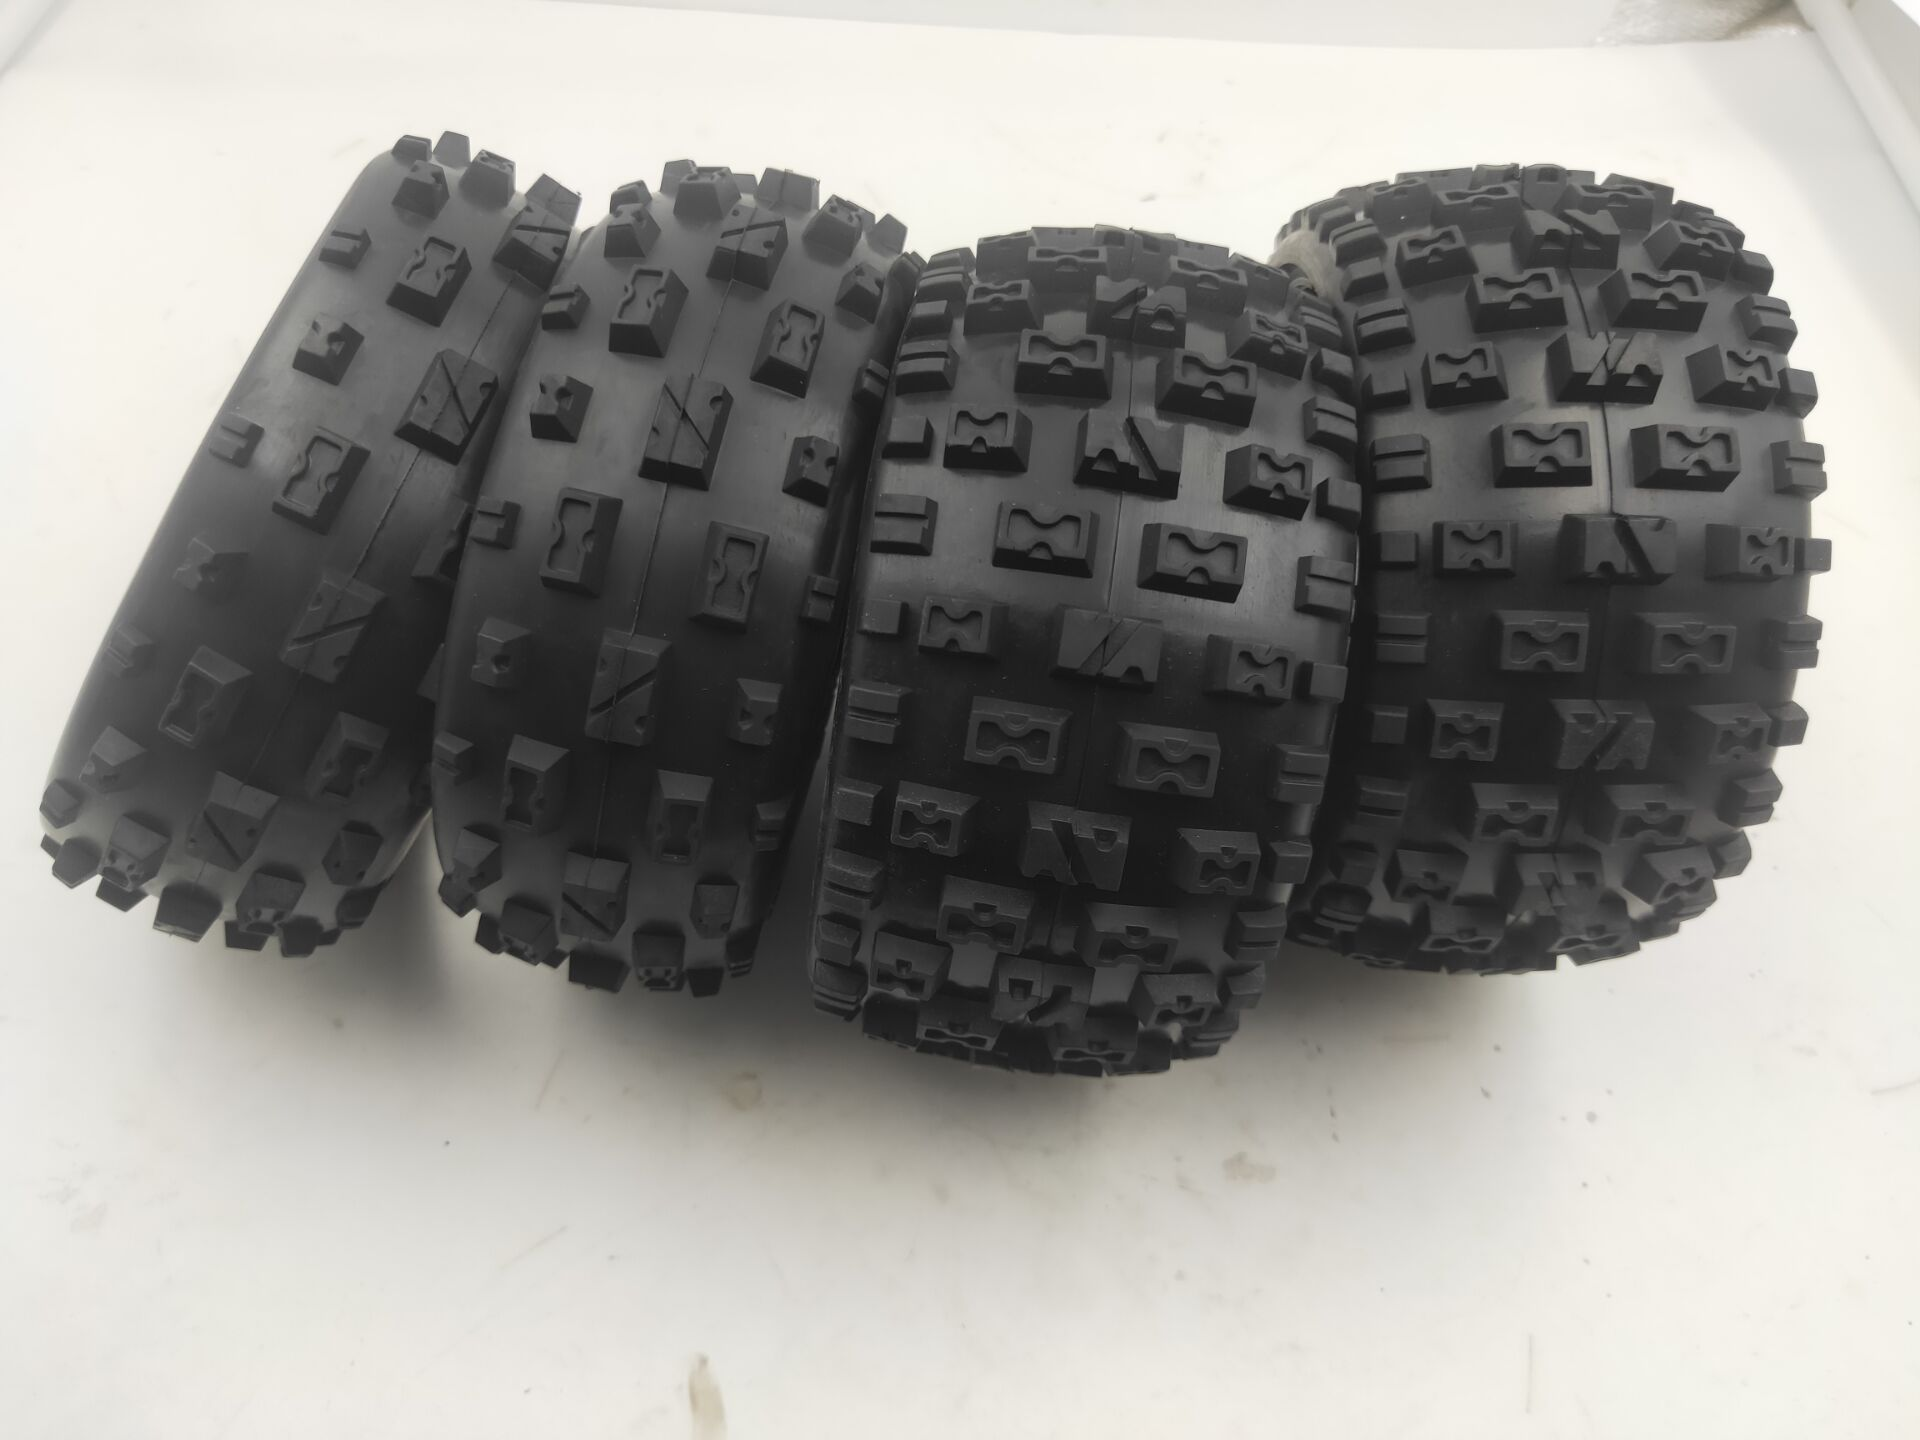 Front size 170x60 and Rear size 170x80 knobby tyre skin set for 1/5 hpi rovan km baja 5b rc car parts